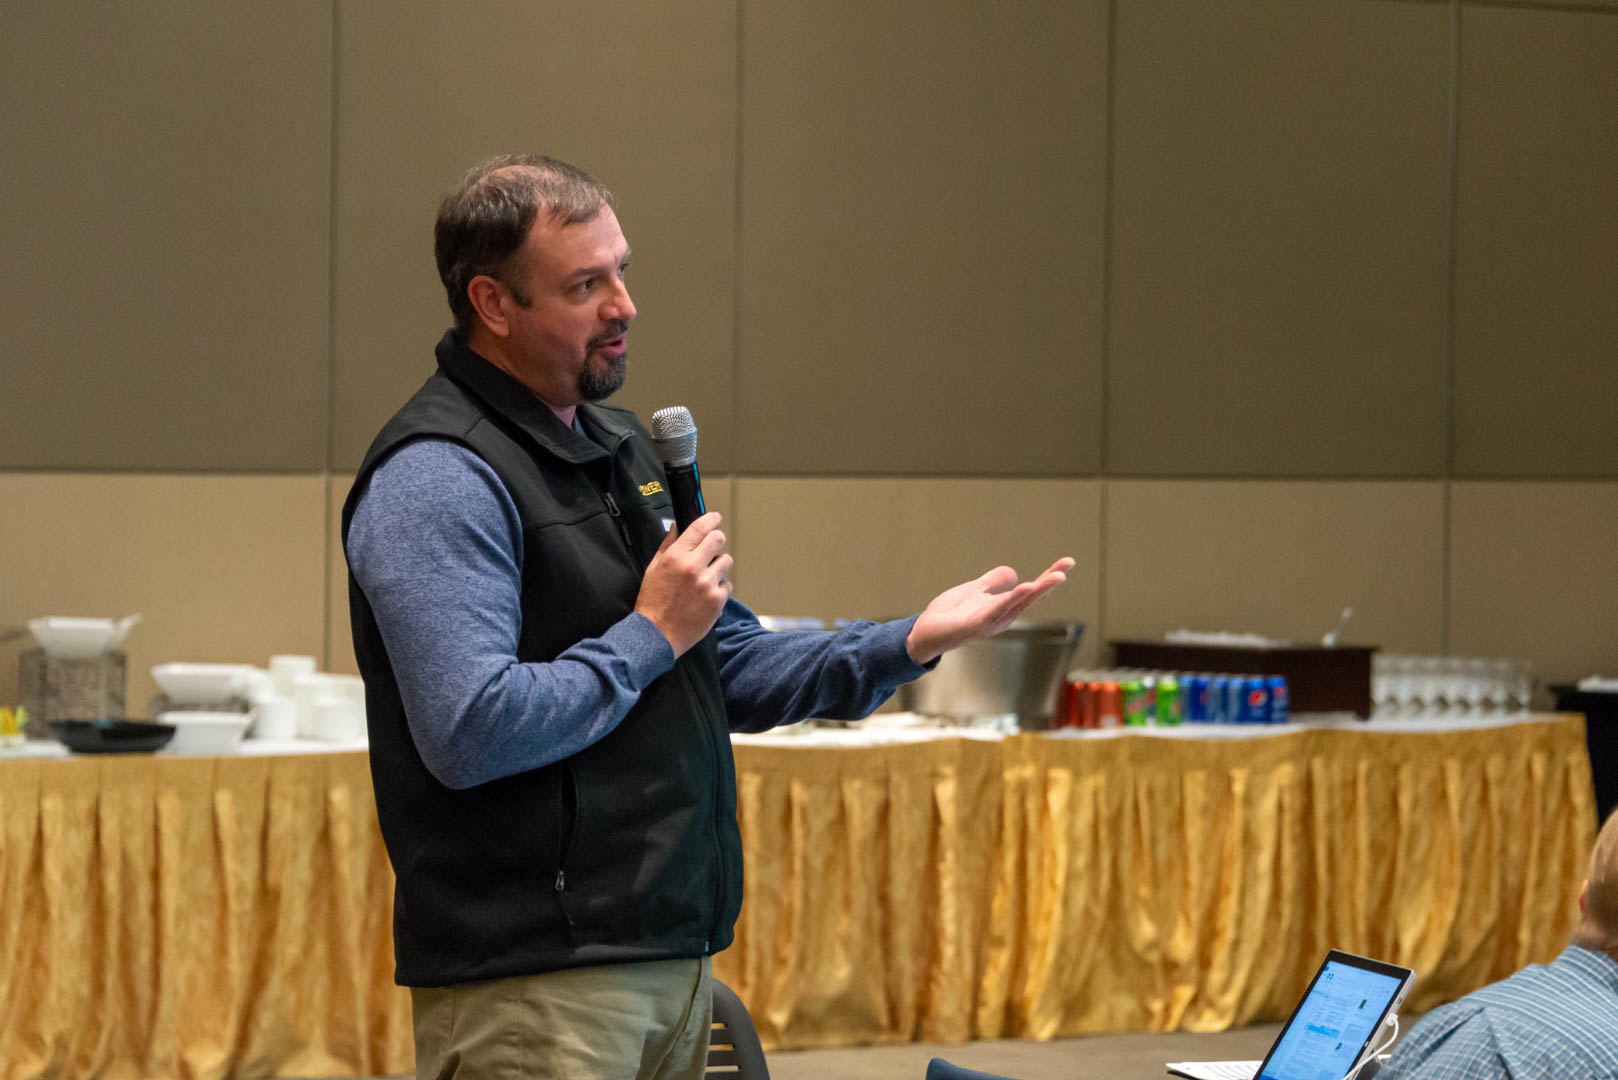 Brian Maurer, EVP of Programming for CU*Answers, gives an update on software development.